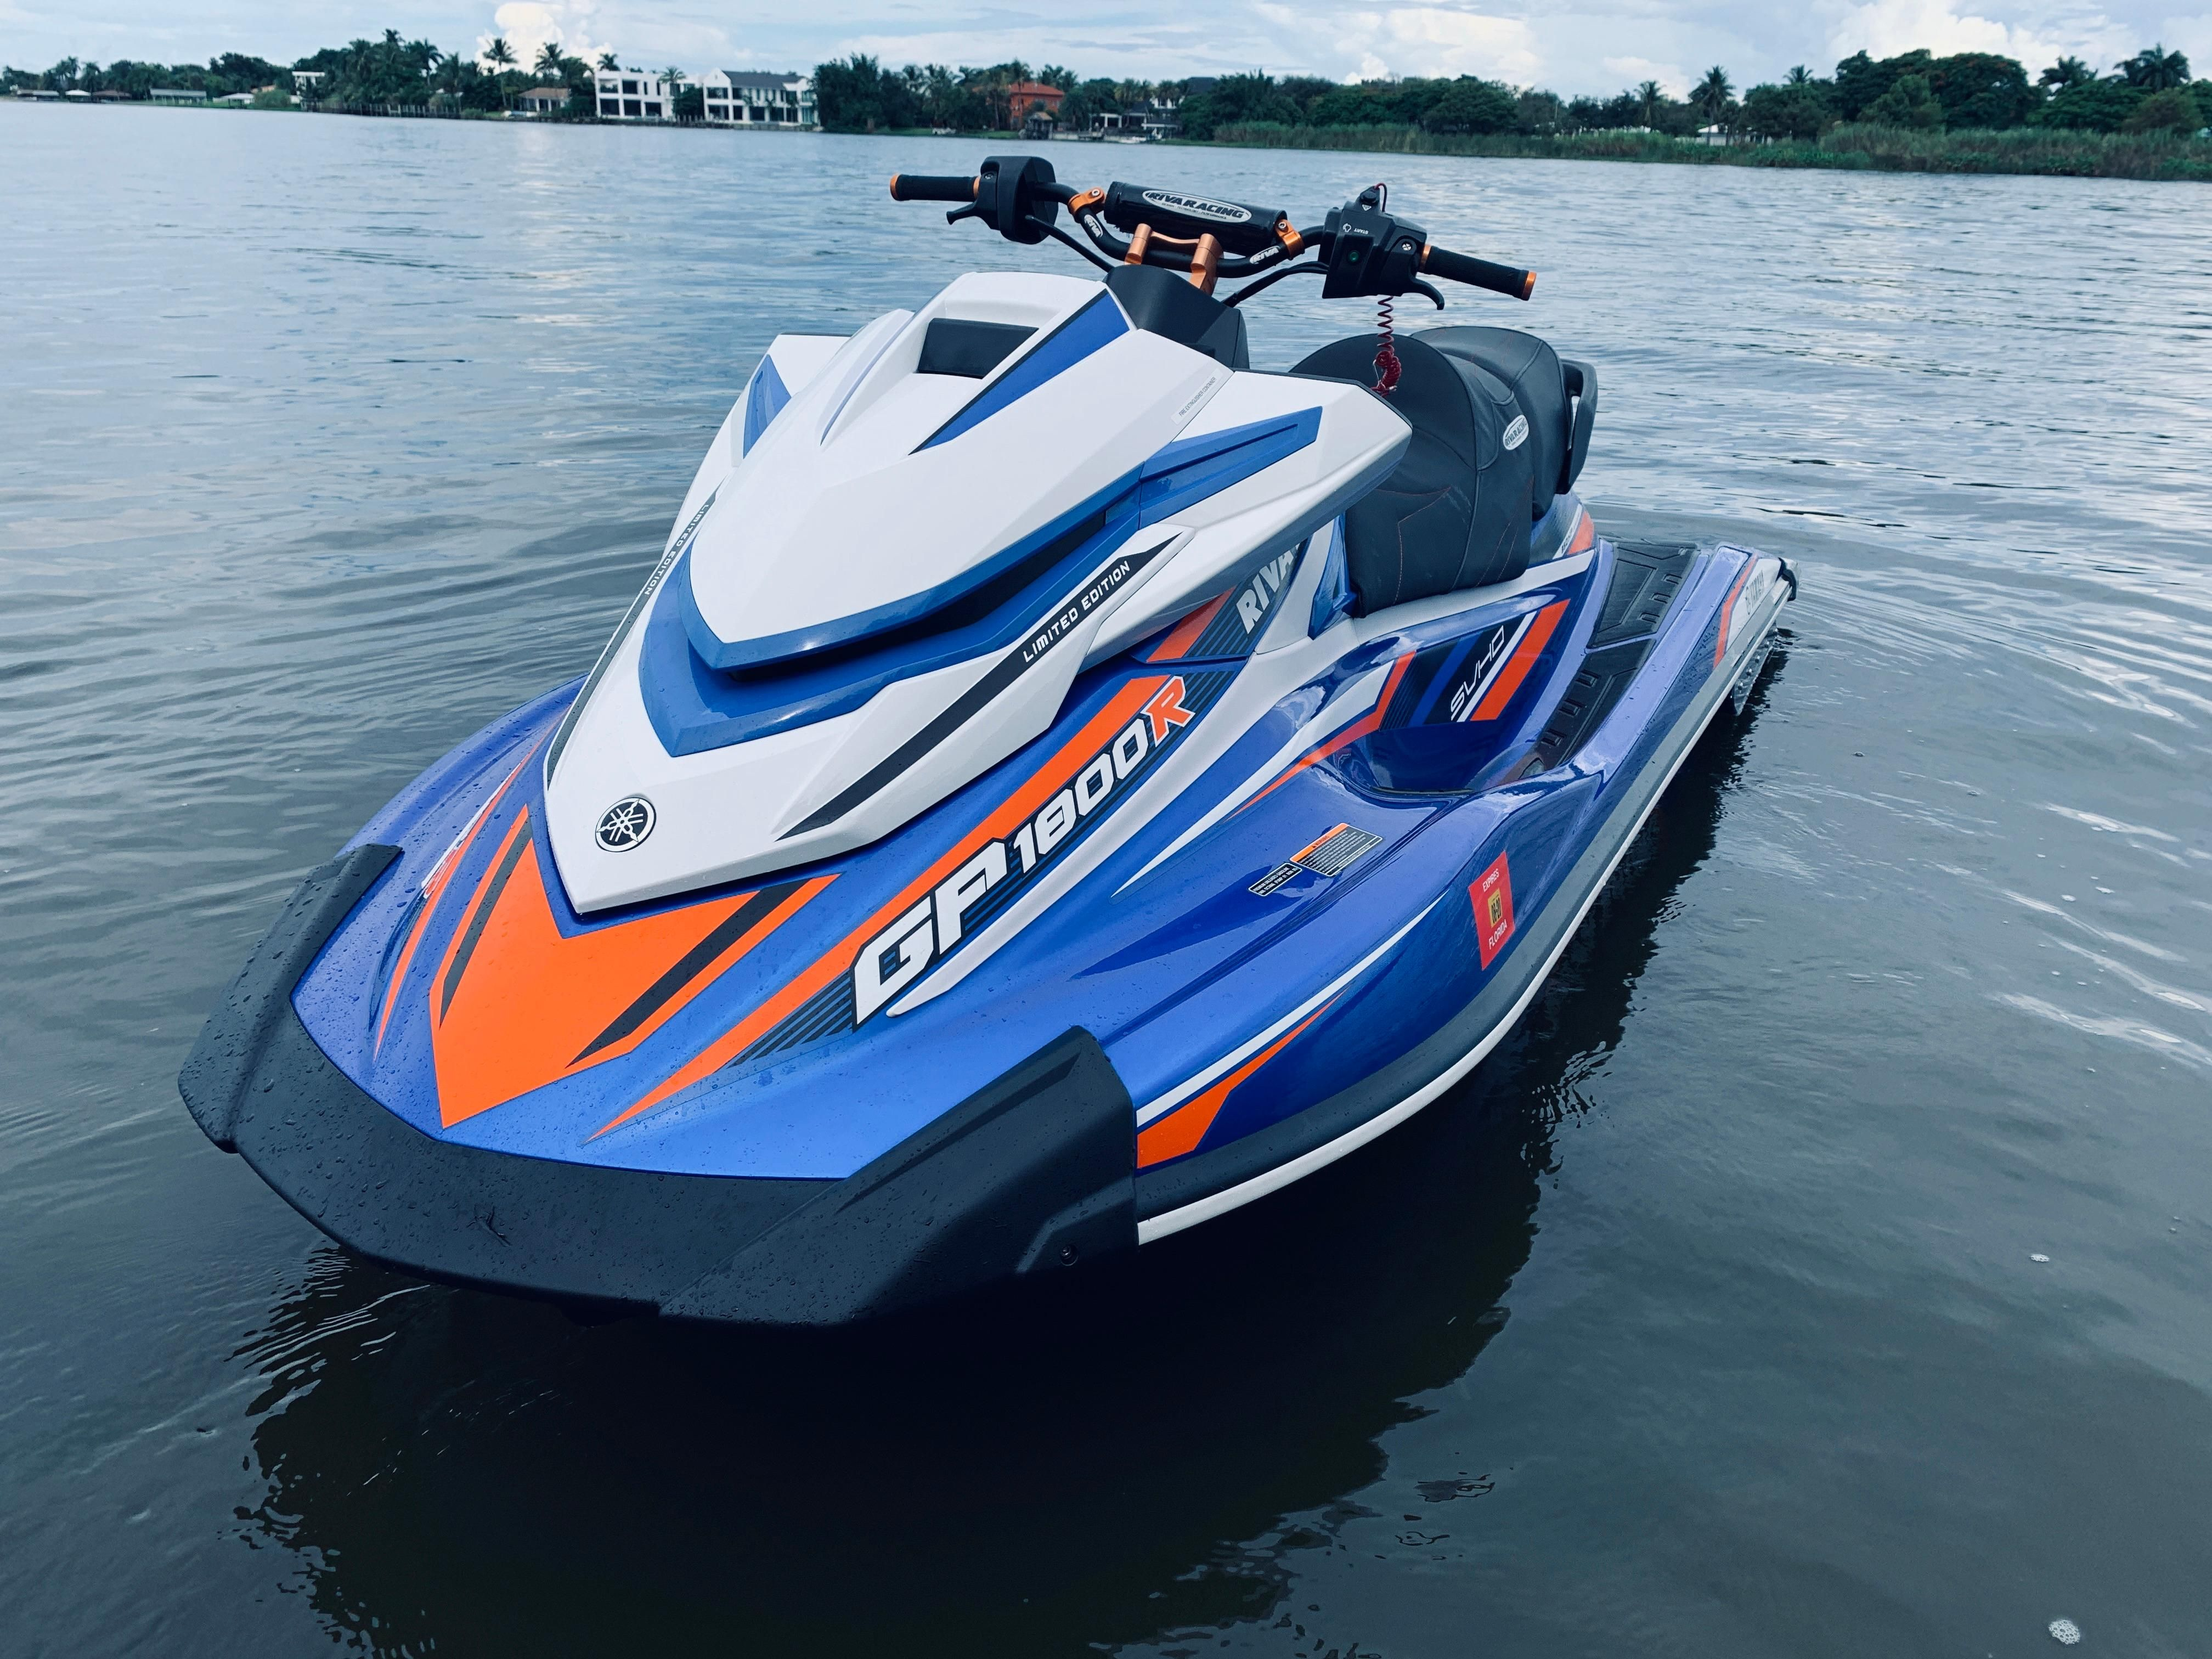 2014 Yamaha WaveRunner VX: The Review from Our PWC Expert